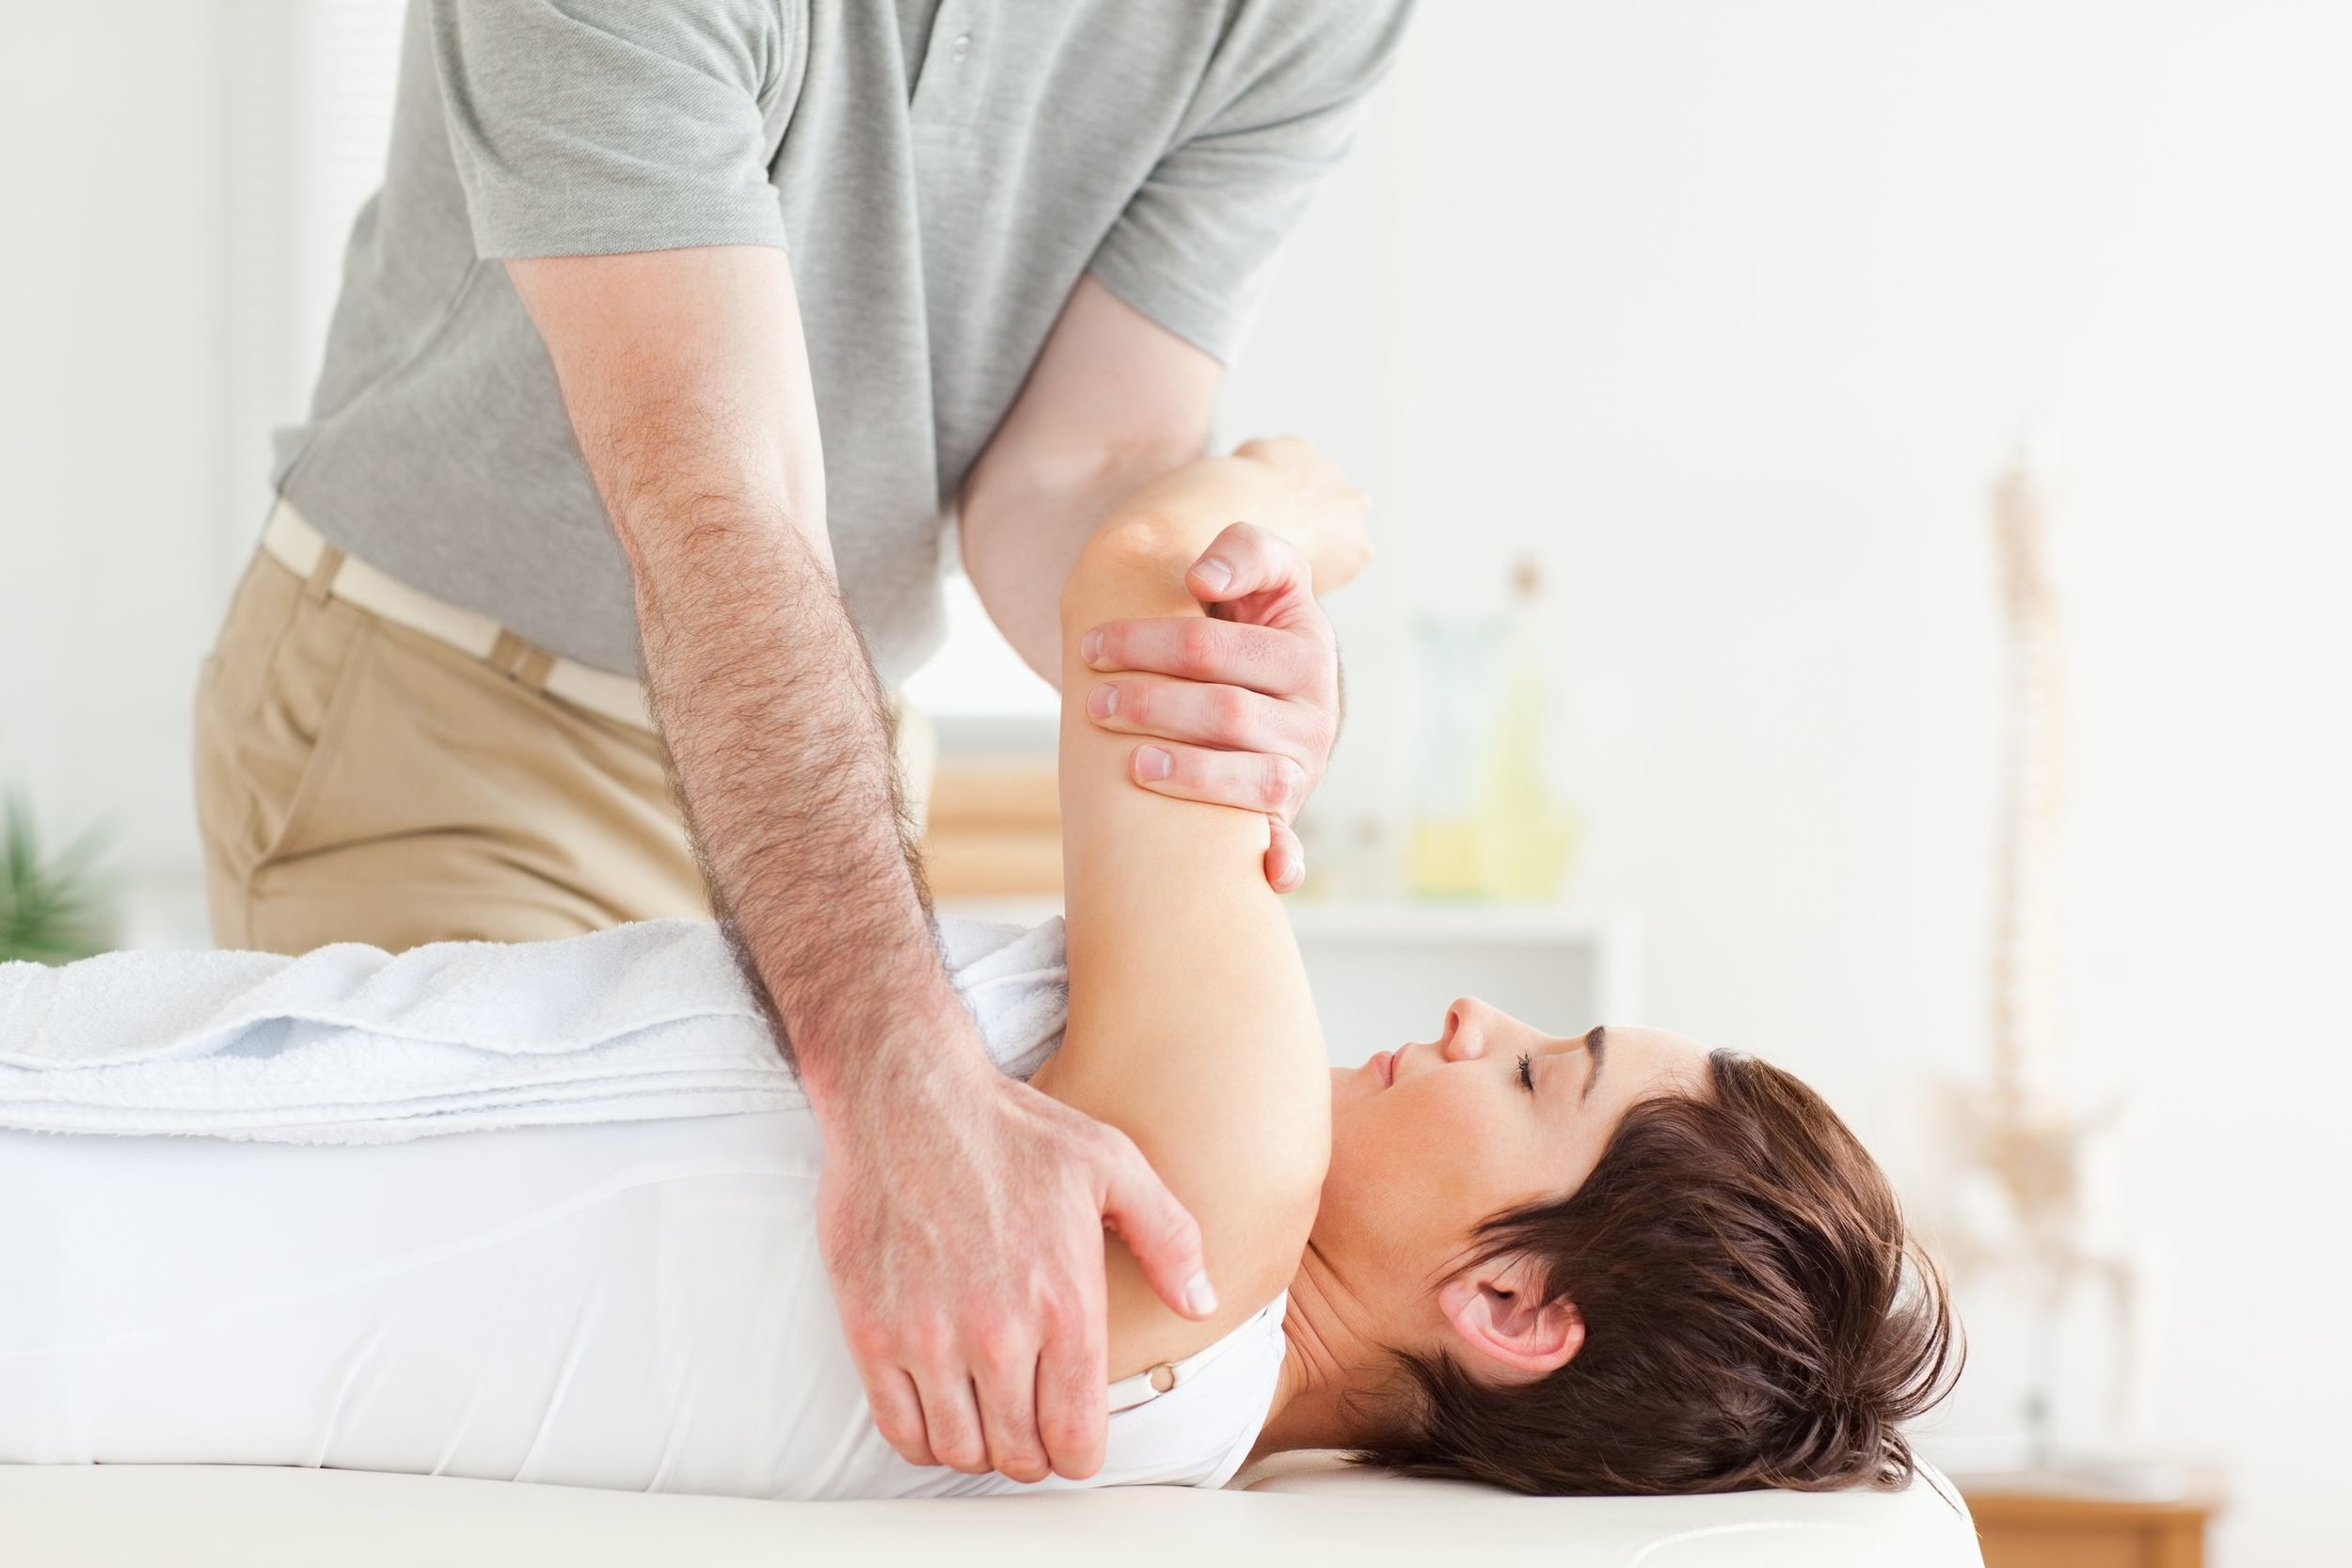 chiropractic-care-pain-free-physiotherapy.jpg